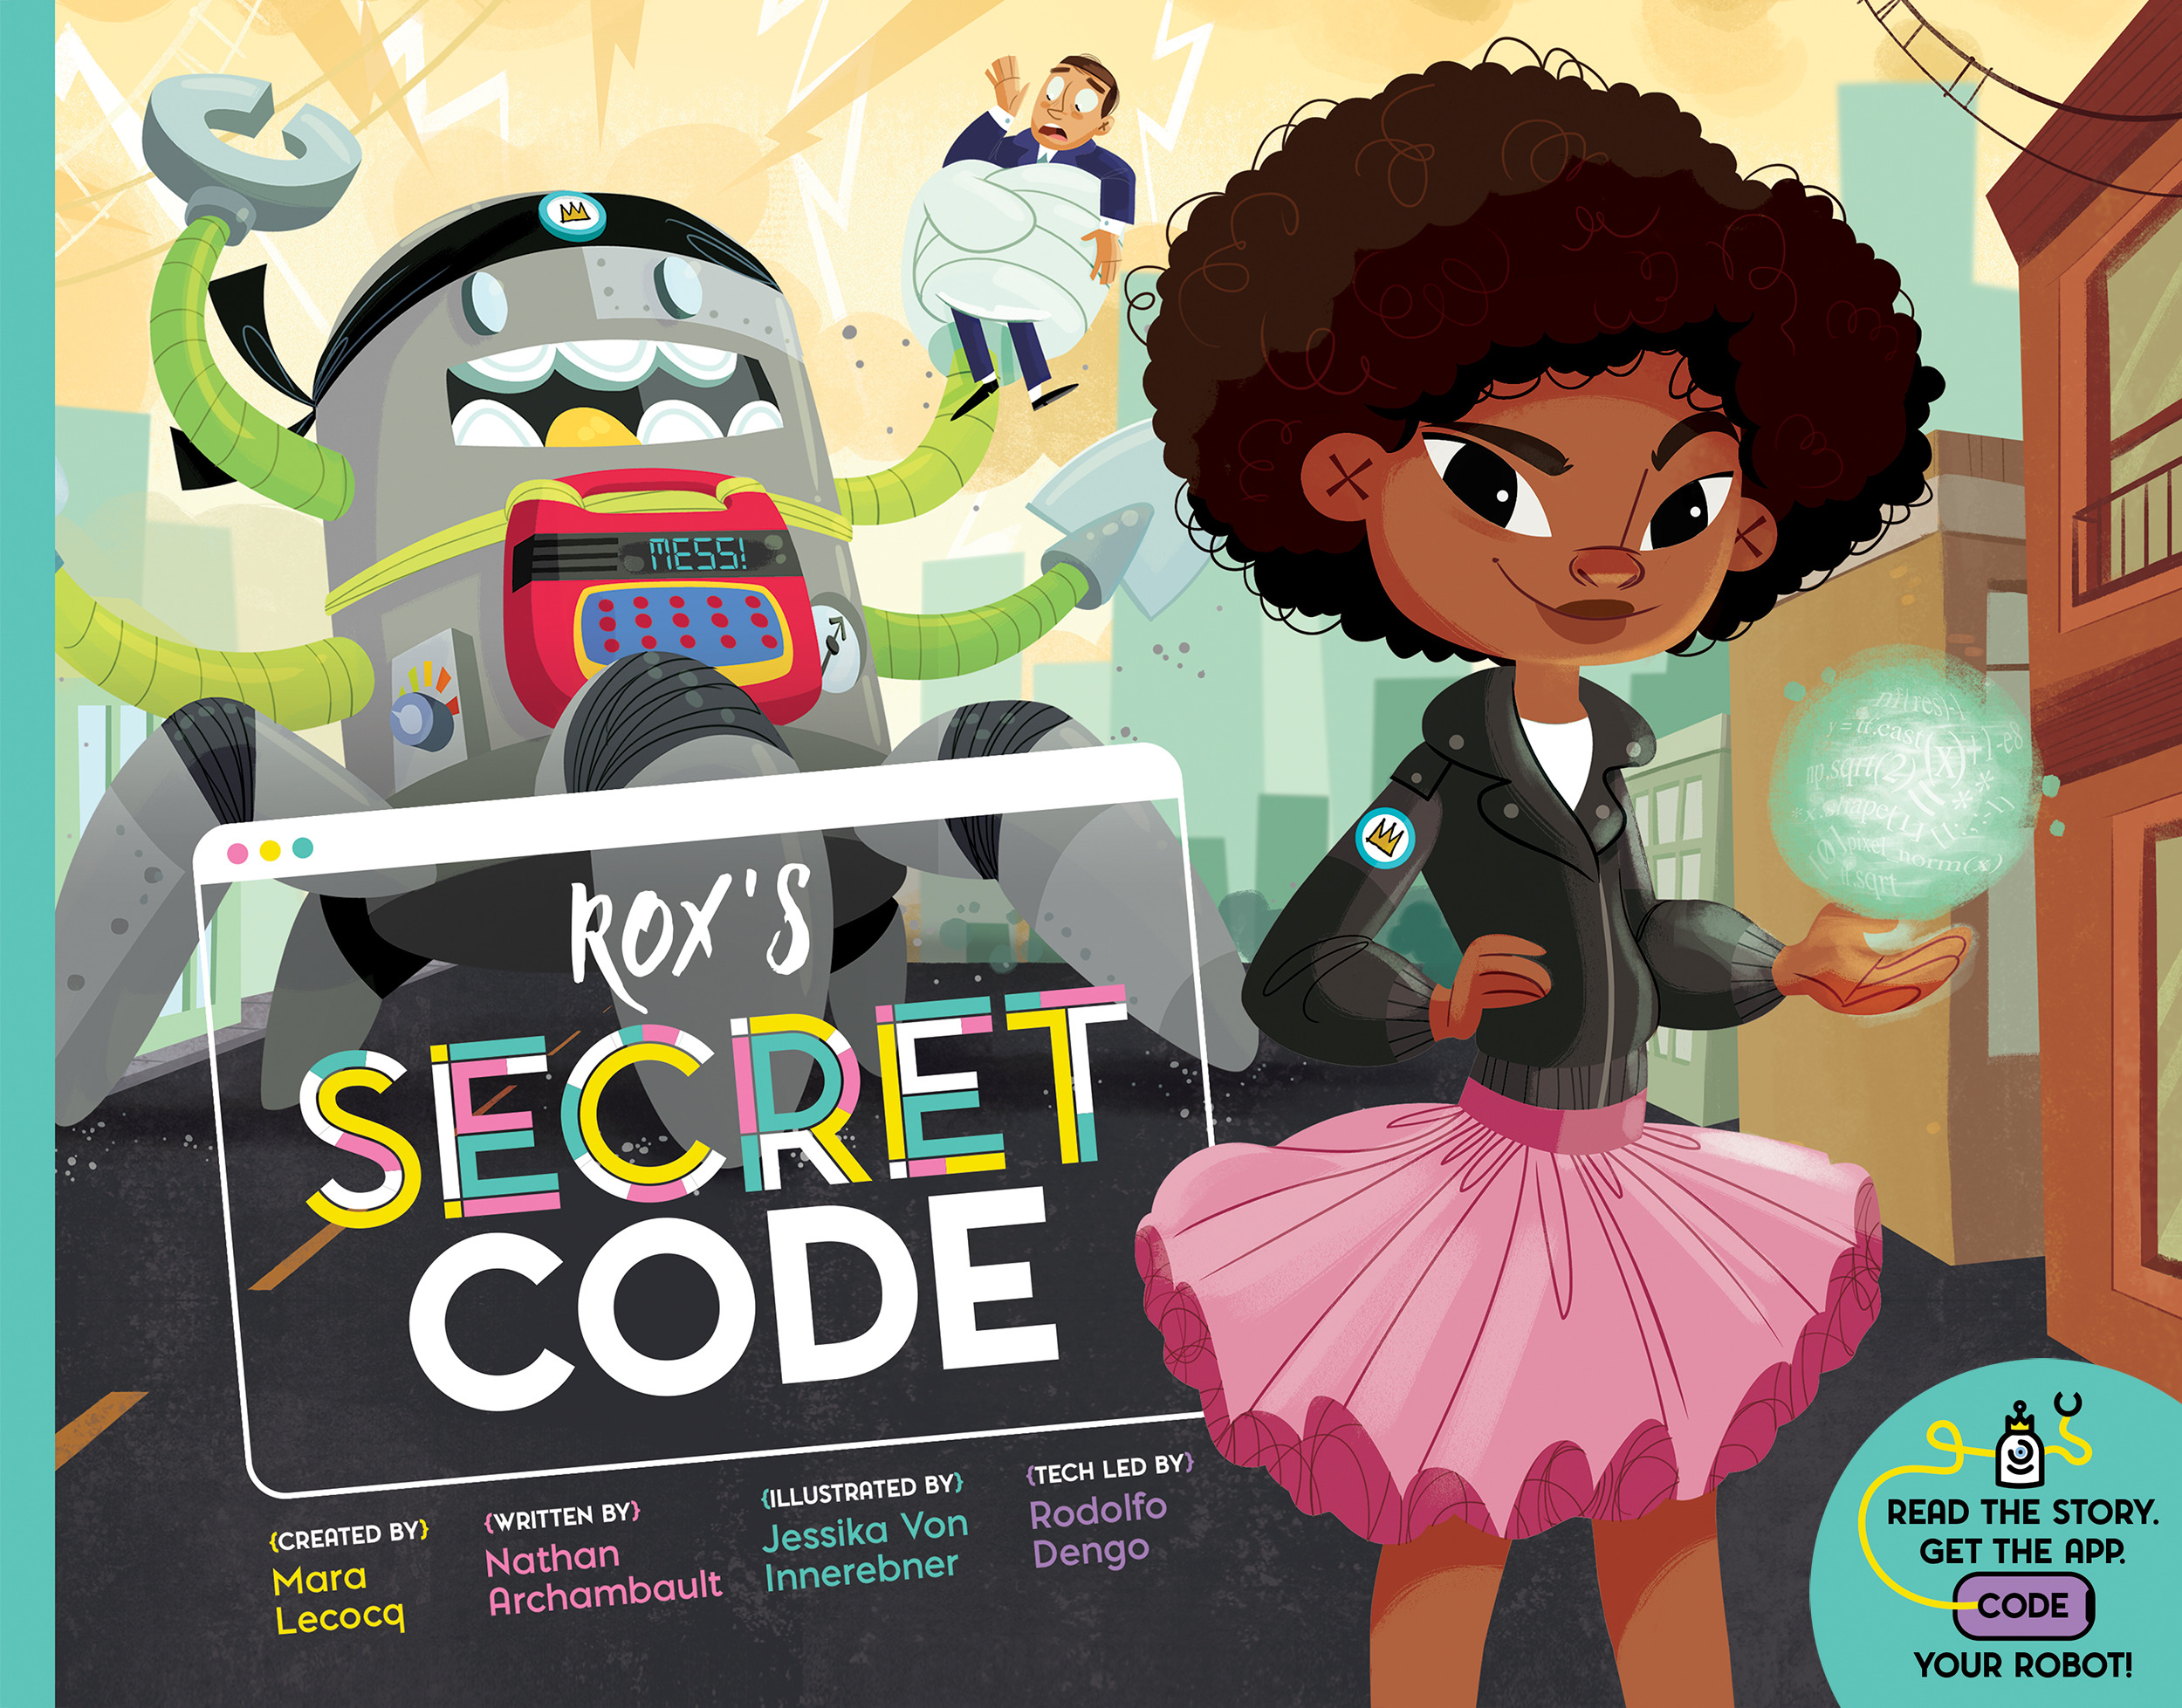 POW! Sunday Story Time with Mara Lecocq and Nathan Archambault (authors of Rox's Secret Code)